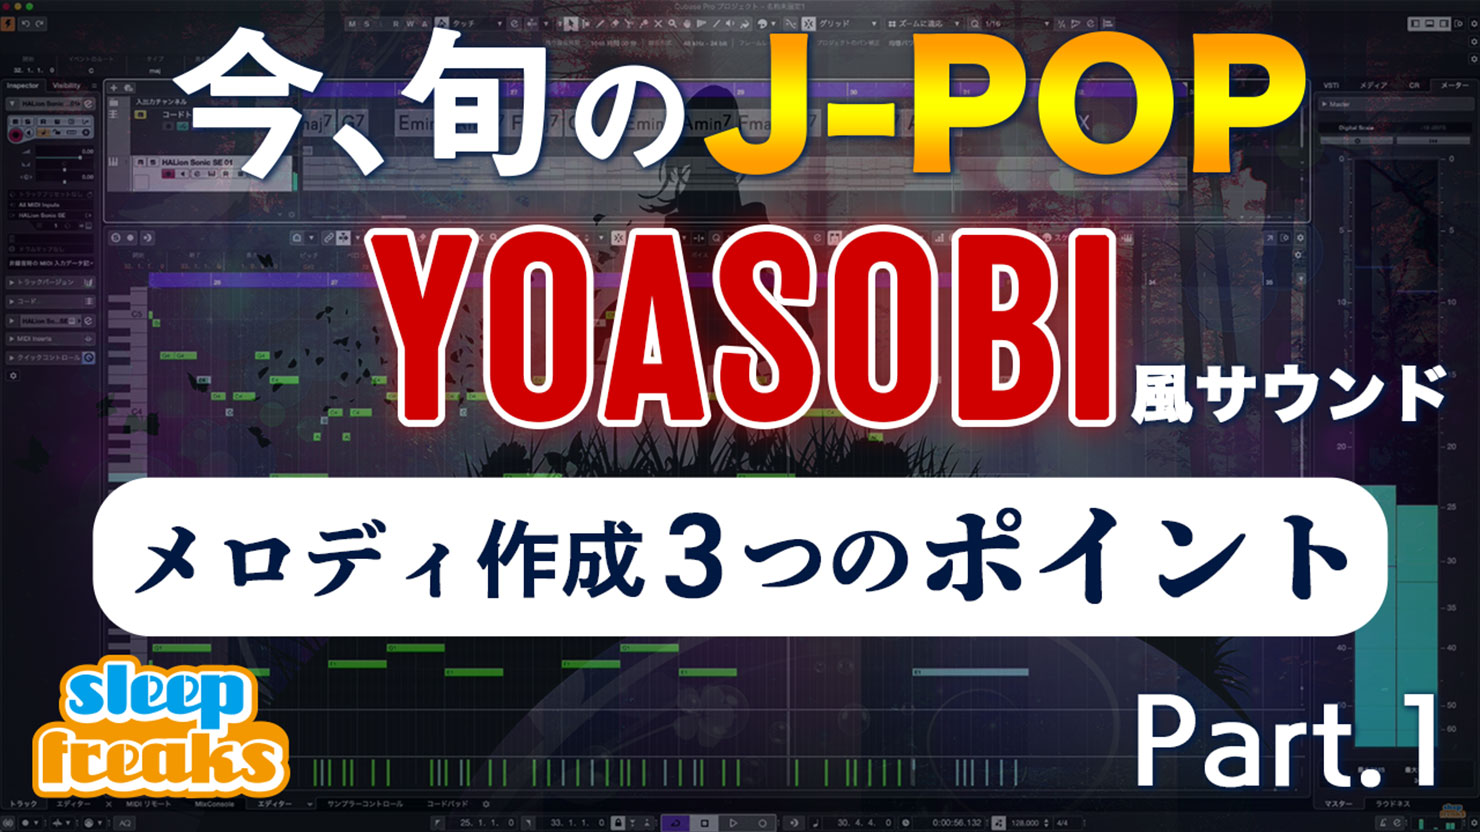 Cubase11-Yoasobi-Sound-part1-Top-Banner